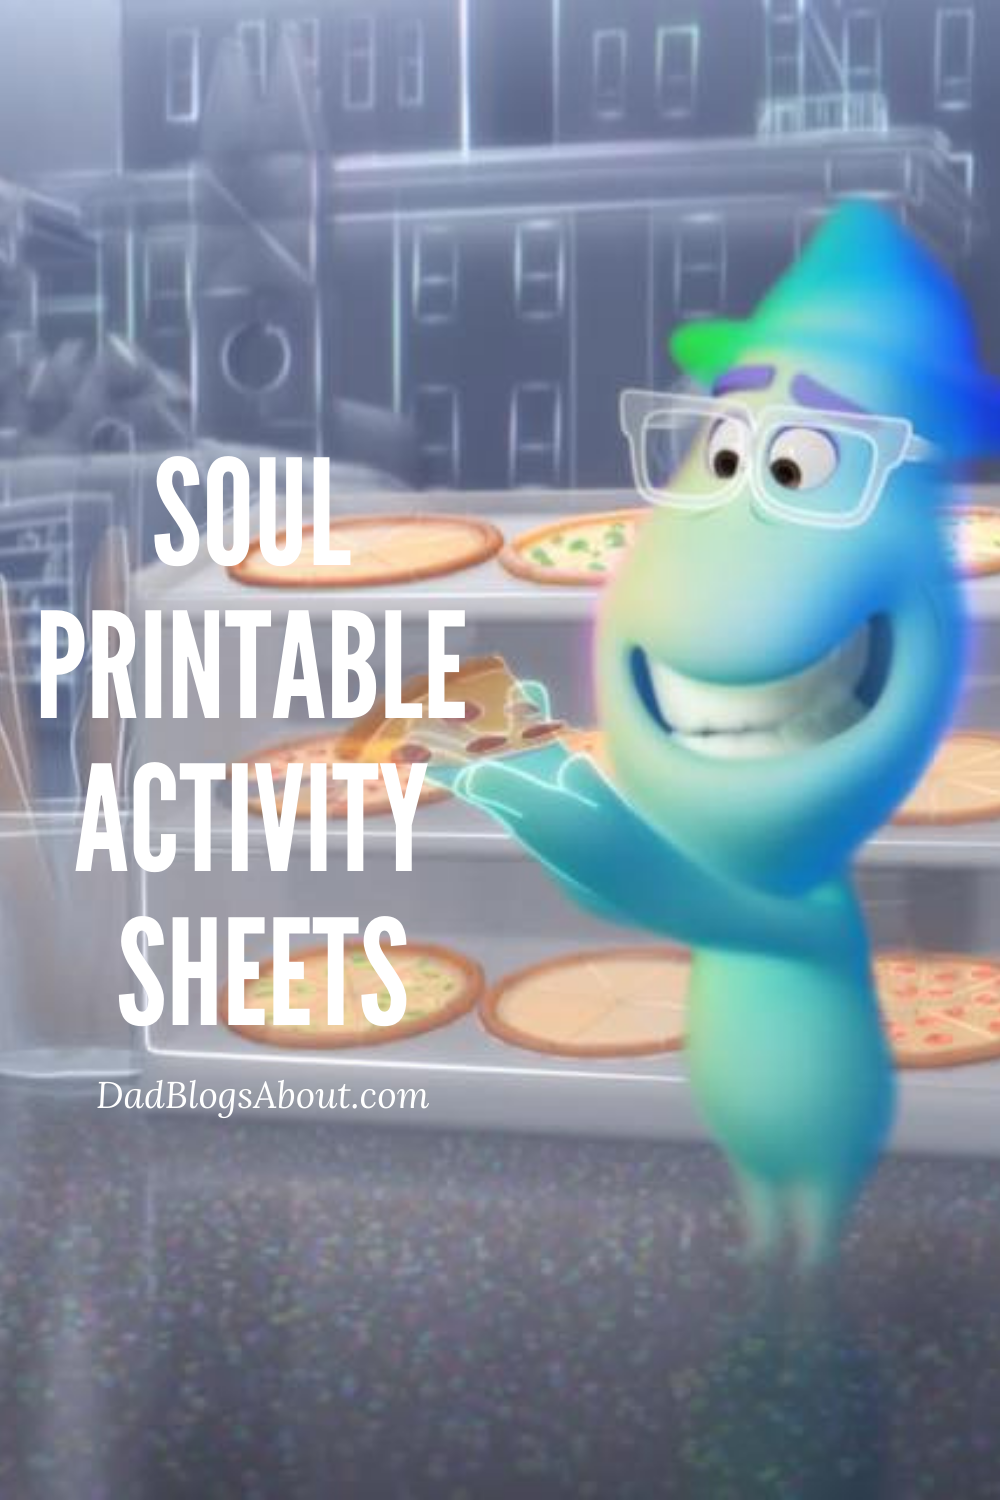 Head on over to DadBlogsAbout.com to print these fun SOUL printable activity sheets and stream SOUL on Disney+ right now.